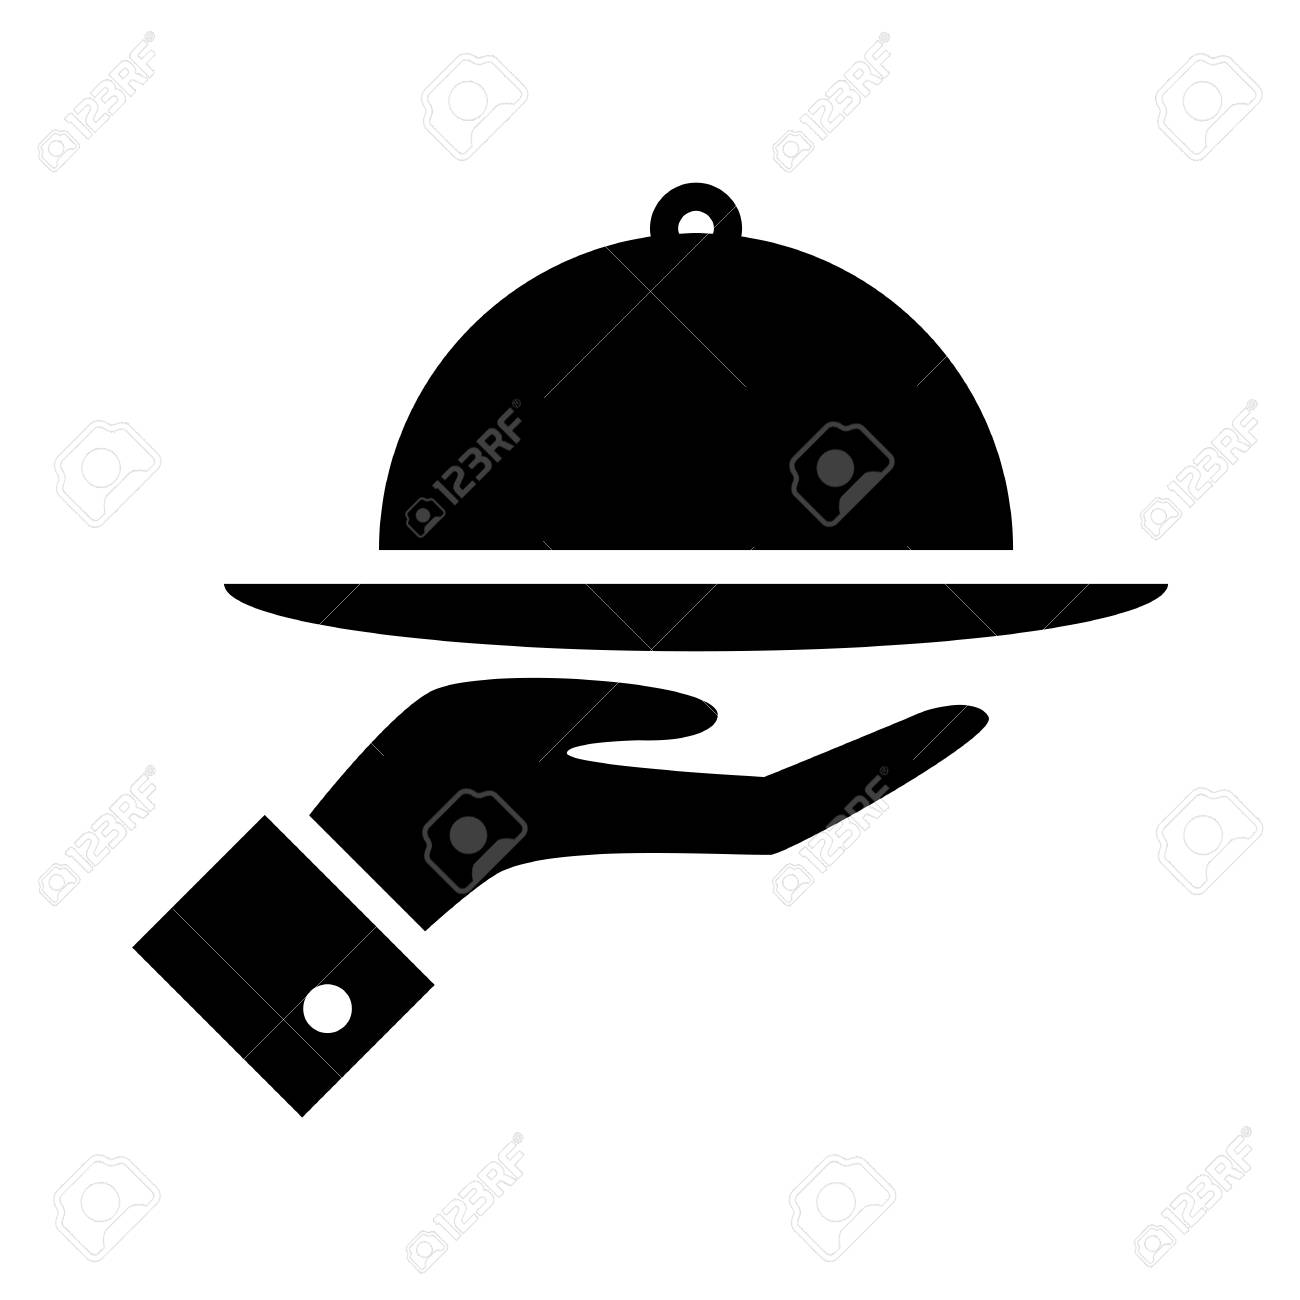 Covered food tray on a hand of hotel room service vector icon. - 97625742